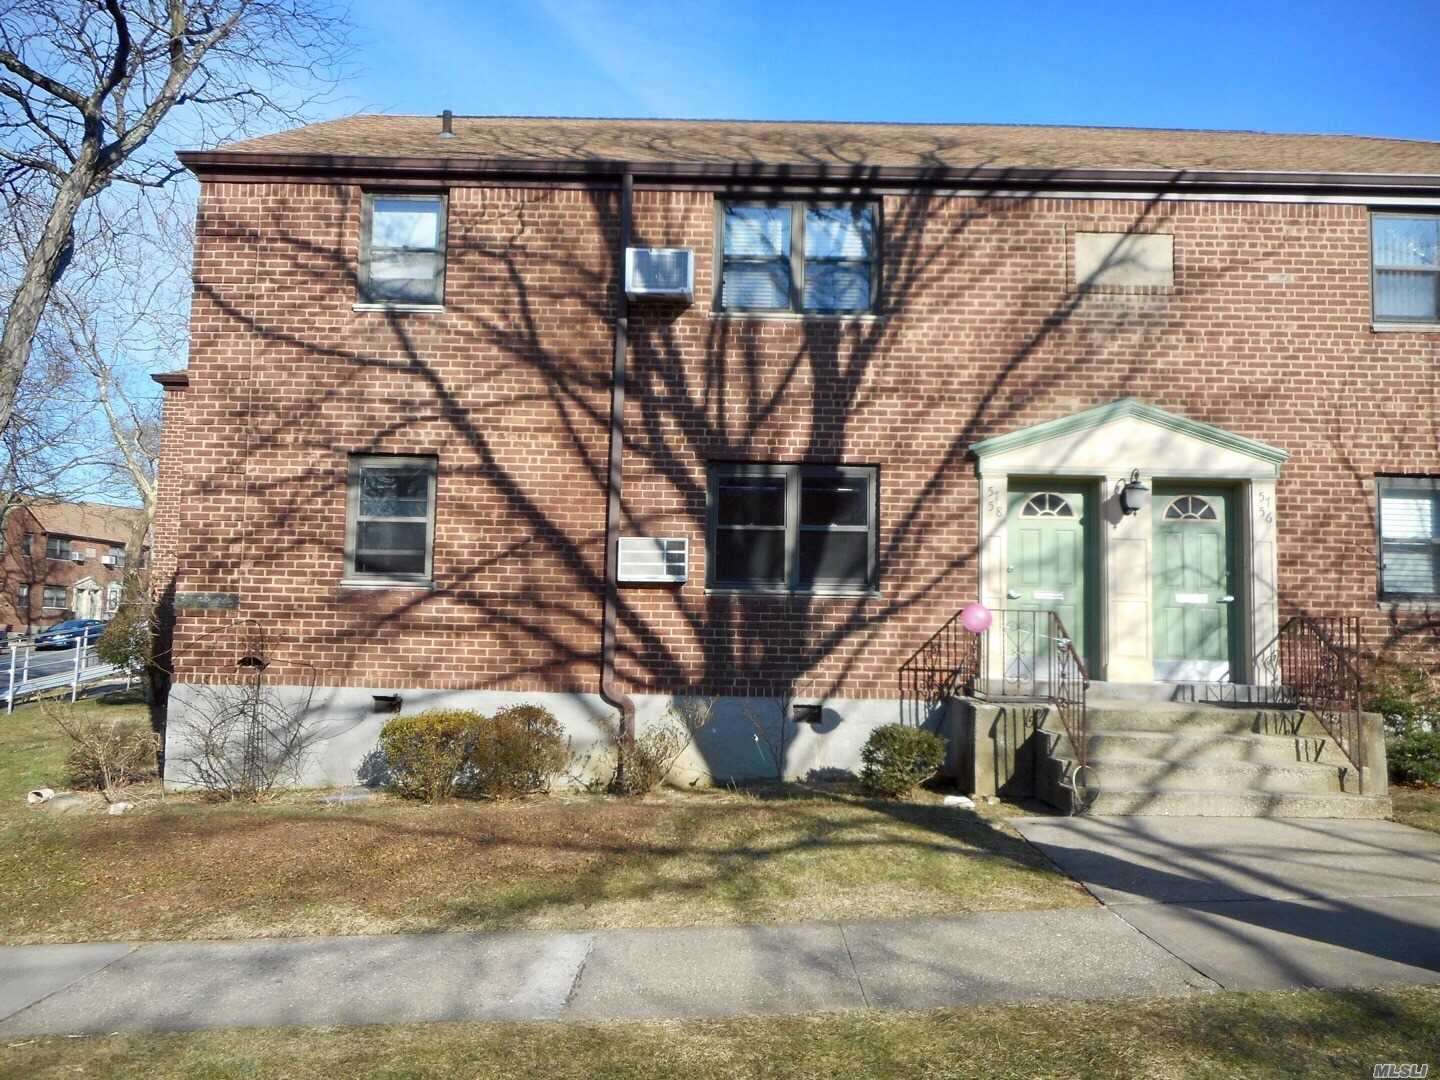 New Listing In Beech Hills! Bright Corner Unit! Inside Courtyard Location. 3 Bedrooms On First Floor . New Stove, New Washer, New Dryer! Maintenance Included All Utilities And Parking! ( Maintenance Reflect 2 Ac, Washer, Dryer, Dishwasher) Zone For The Top Schools In District 26 !